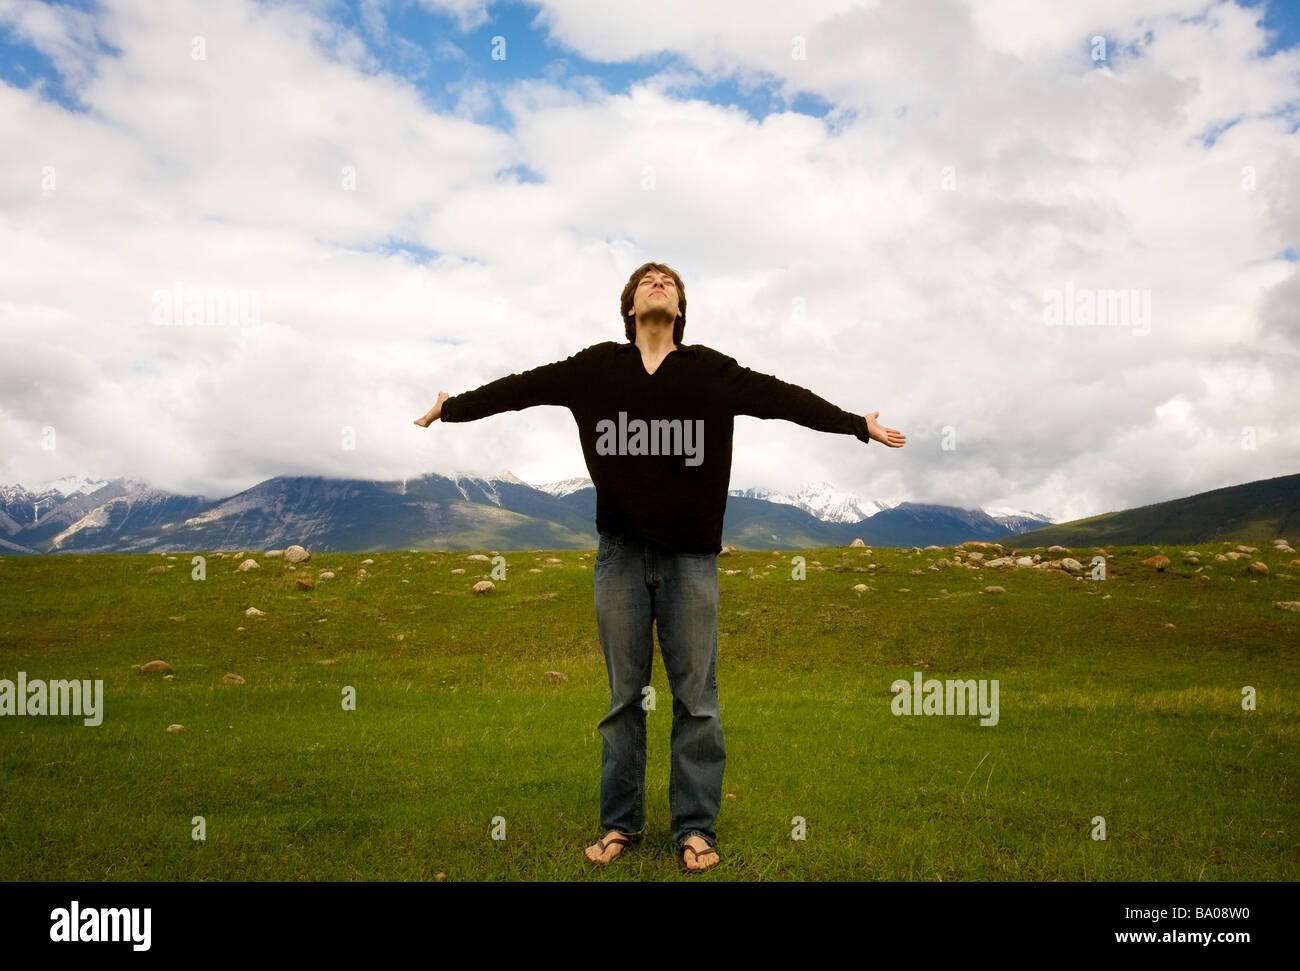 Man with open arms, Jasper, Canada - Stock Image